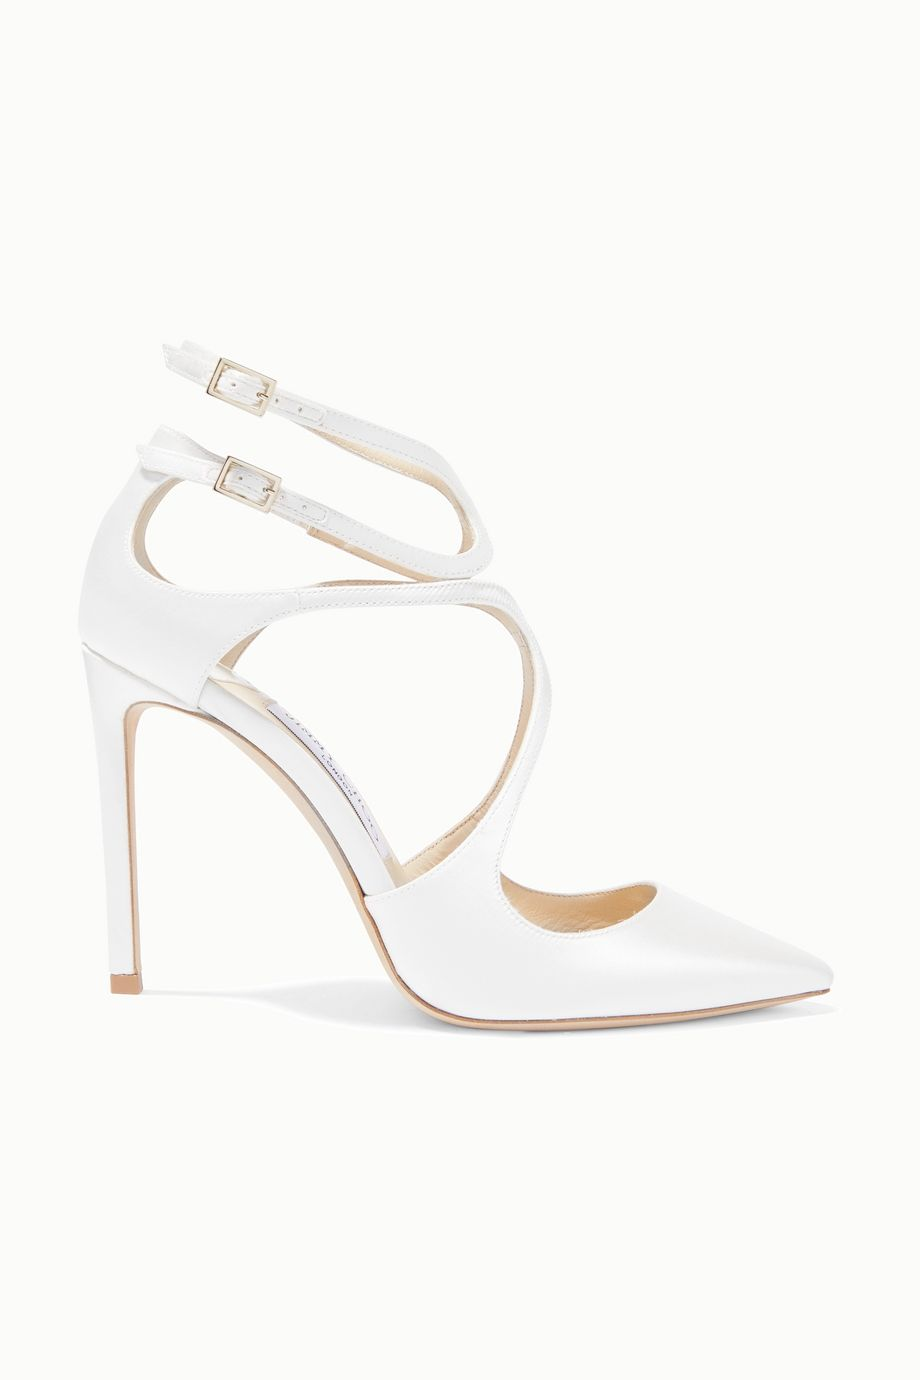 Jimmy Choo Lancer 100 satin pumps